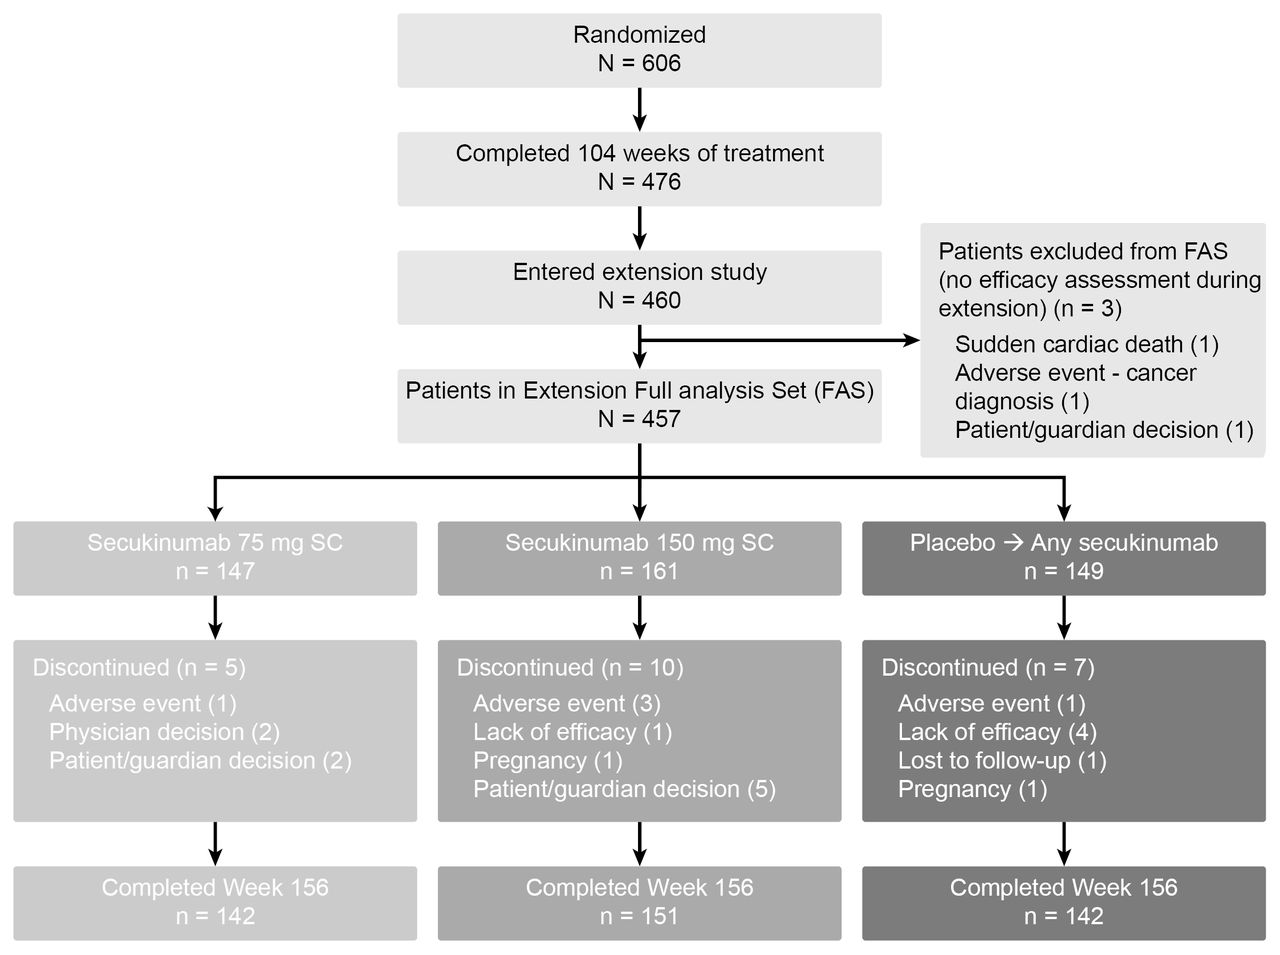 Secukinumab In The Treatment Of Psoriatic Arthritis Efficacy And